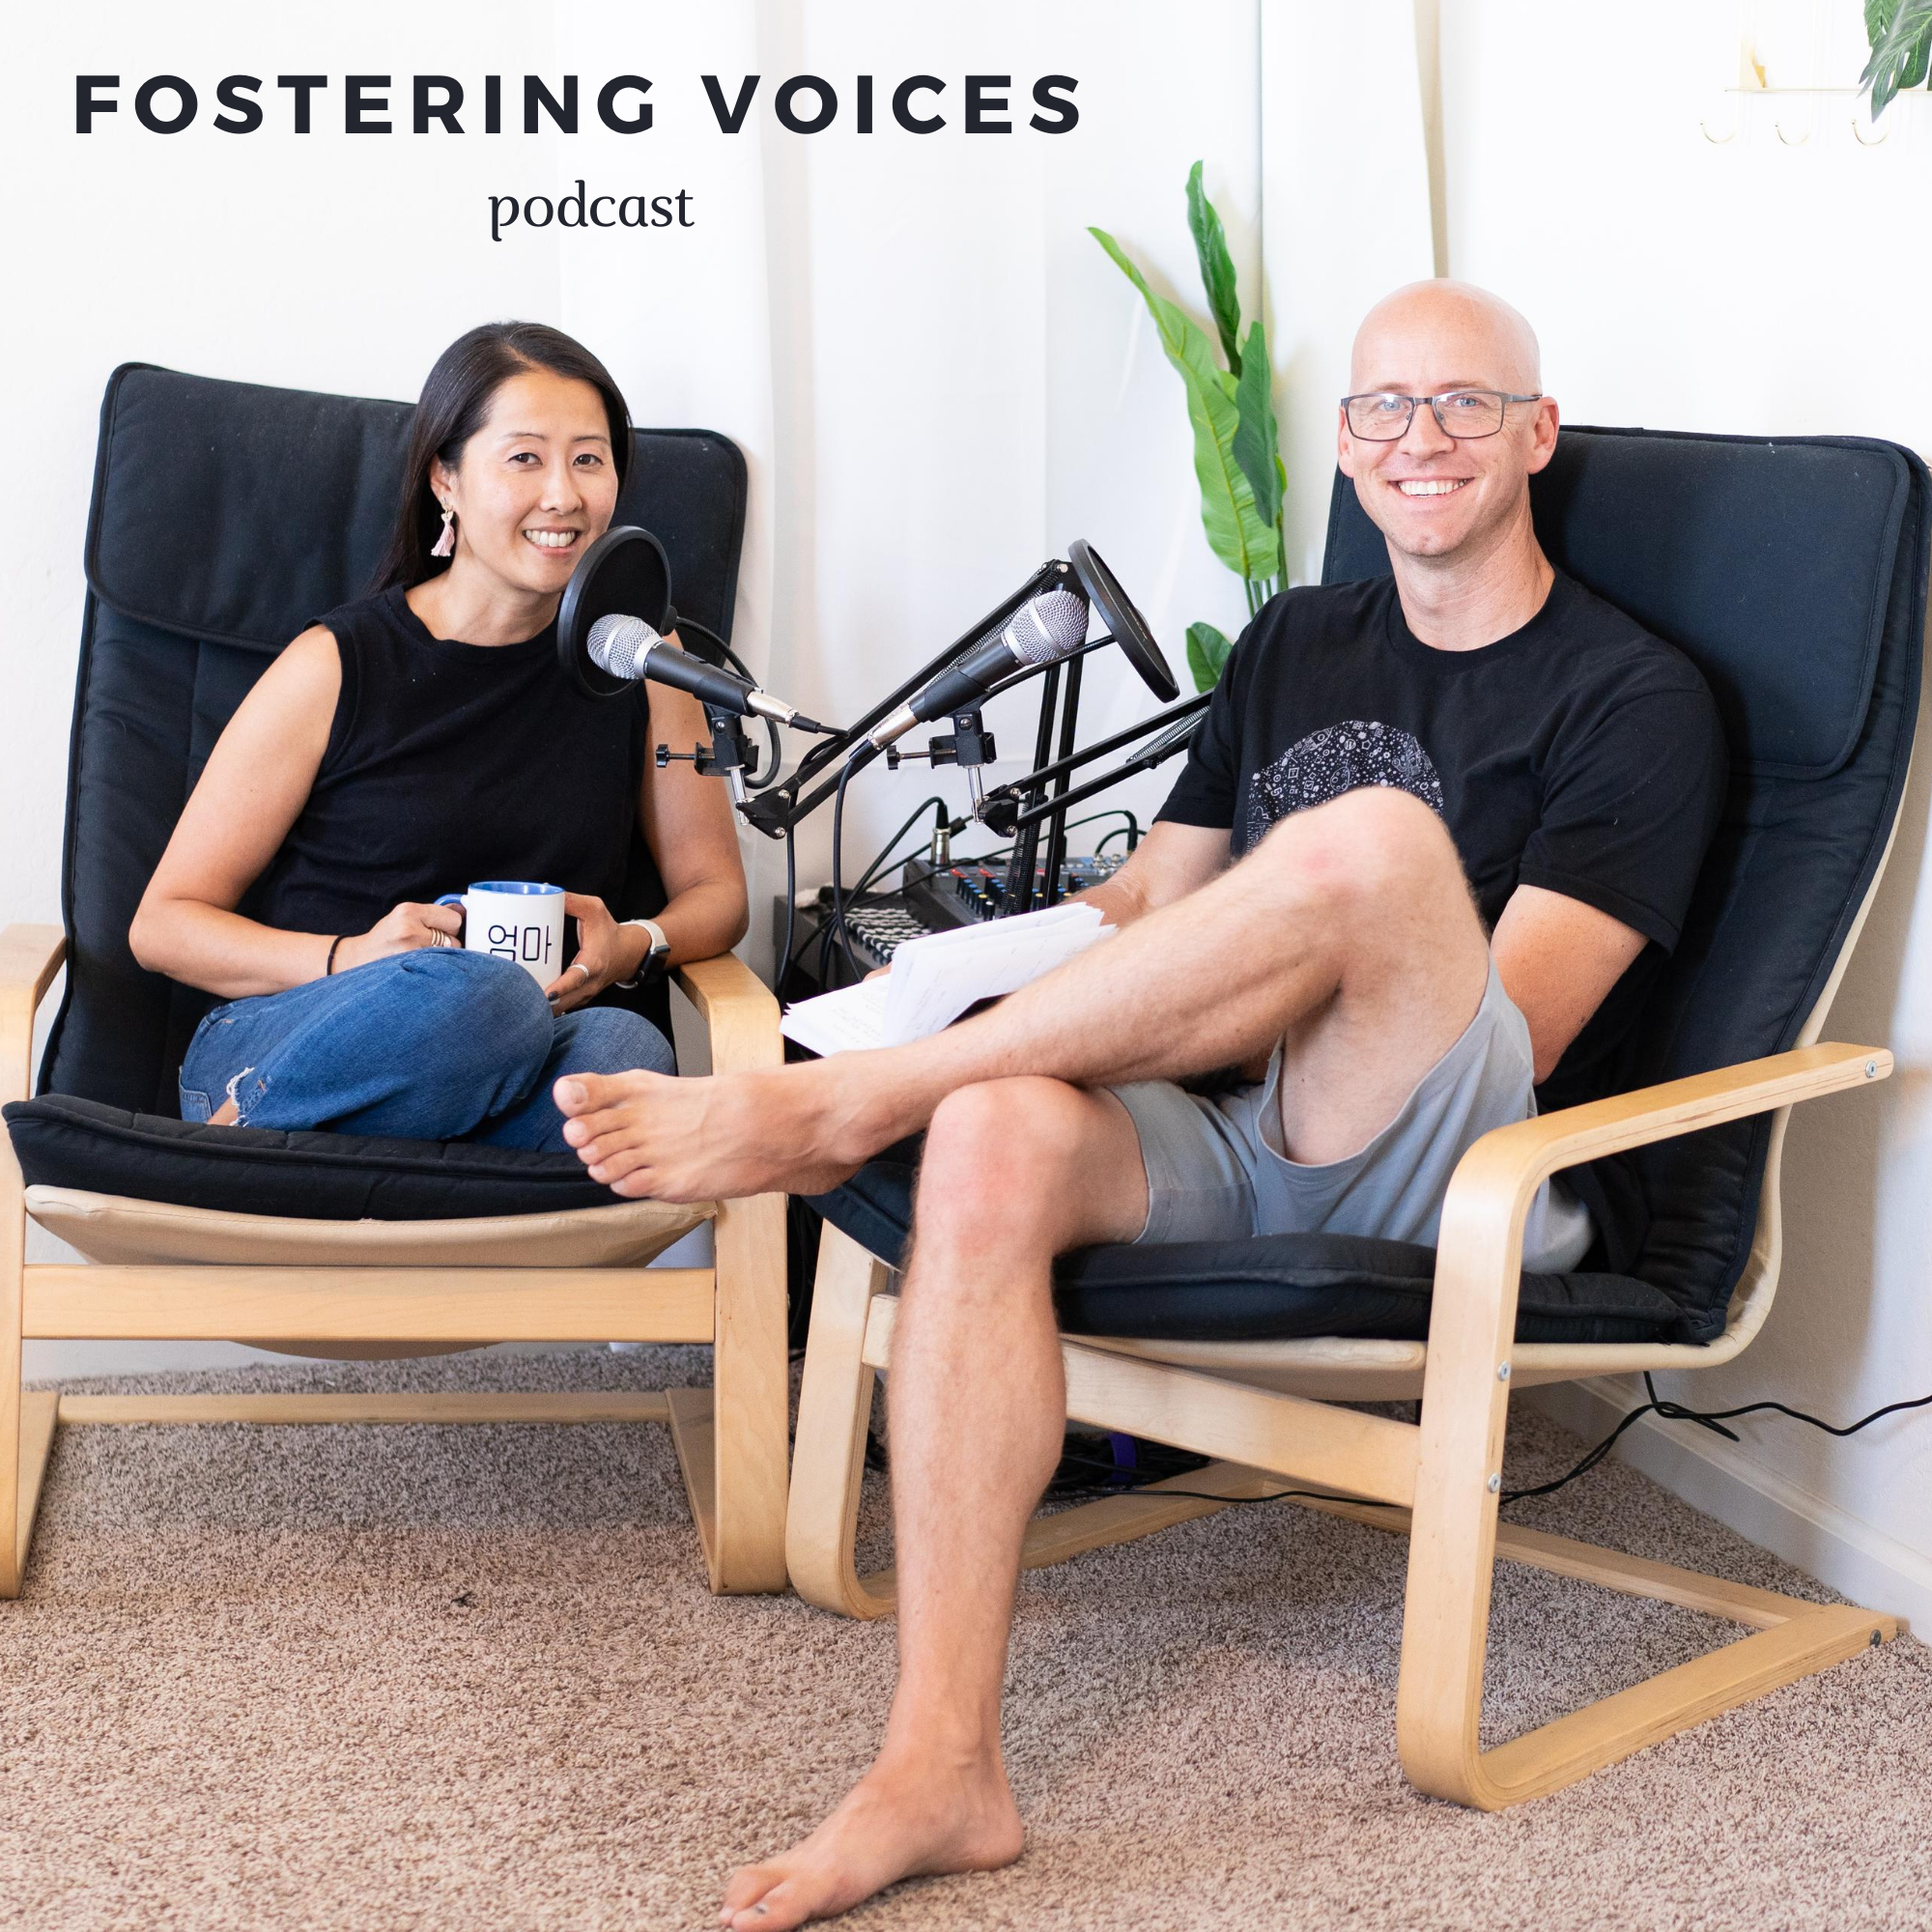 Episode 95: Loss and Feelings in Foster Care and Adoption show art